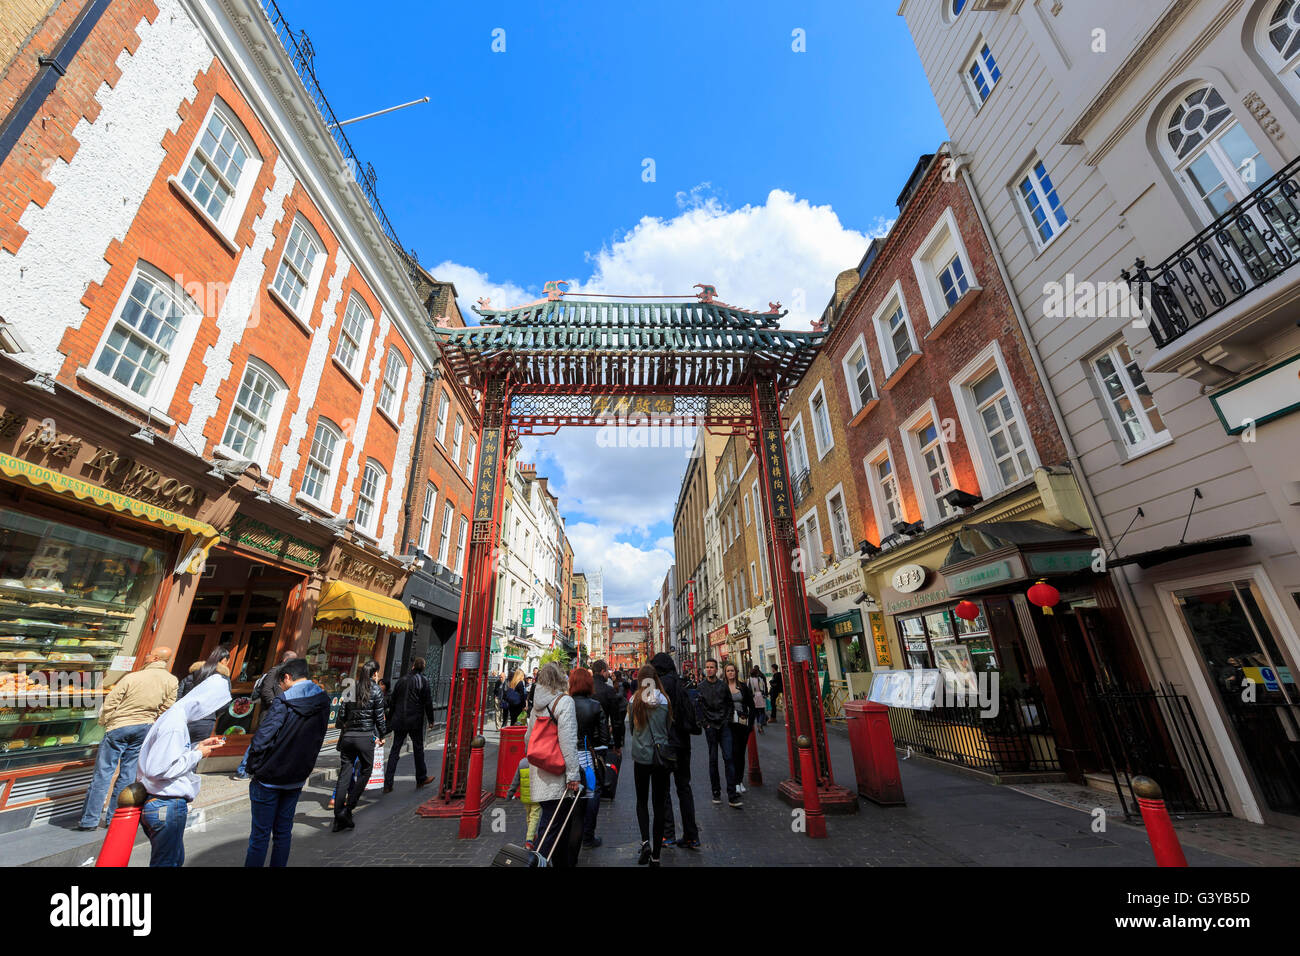 London, APR 17: The famous China Town on APR 17, 2016 at London Stock Photo